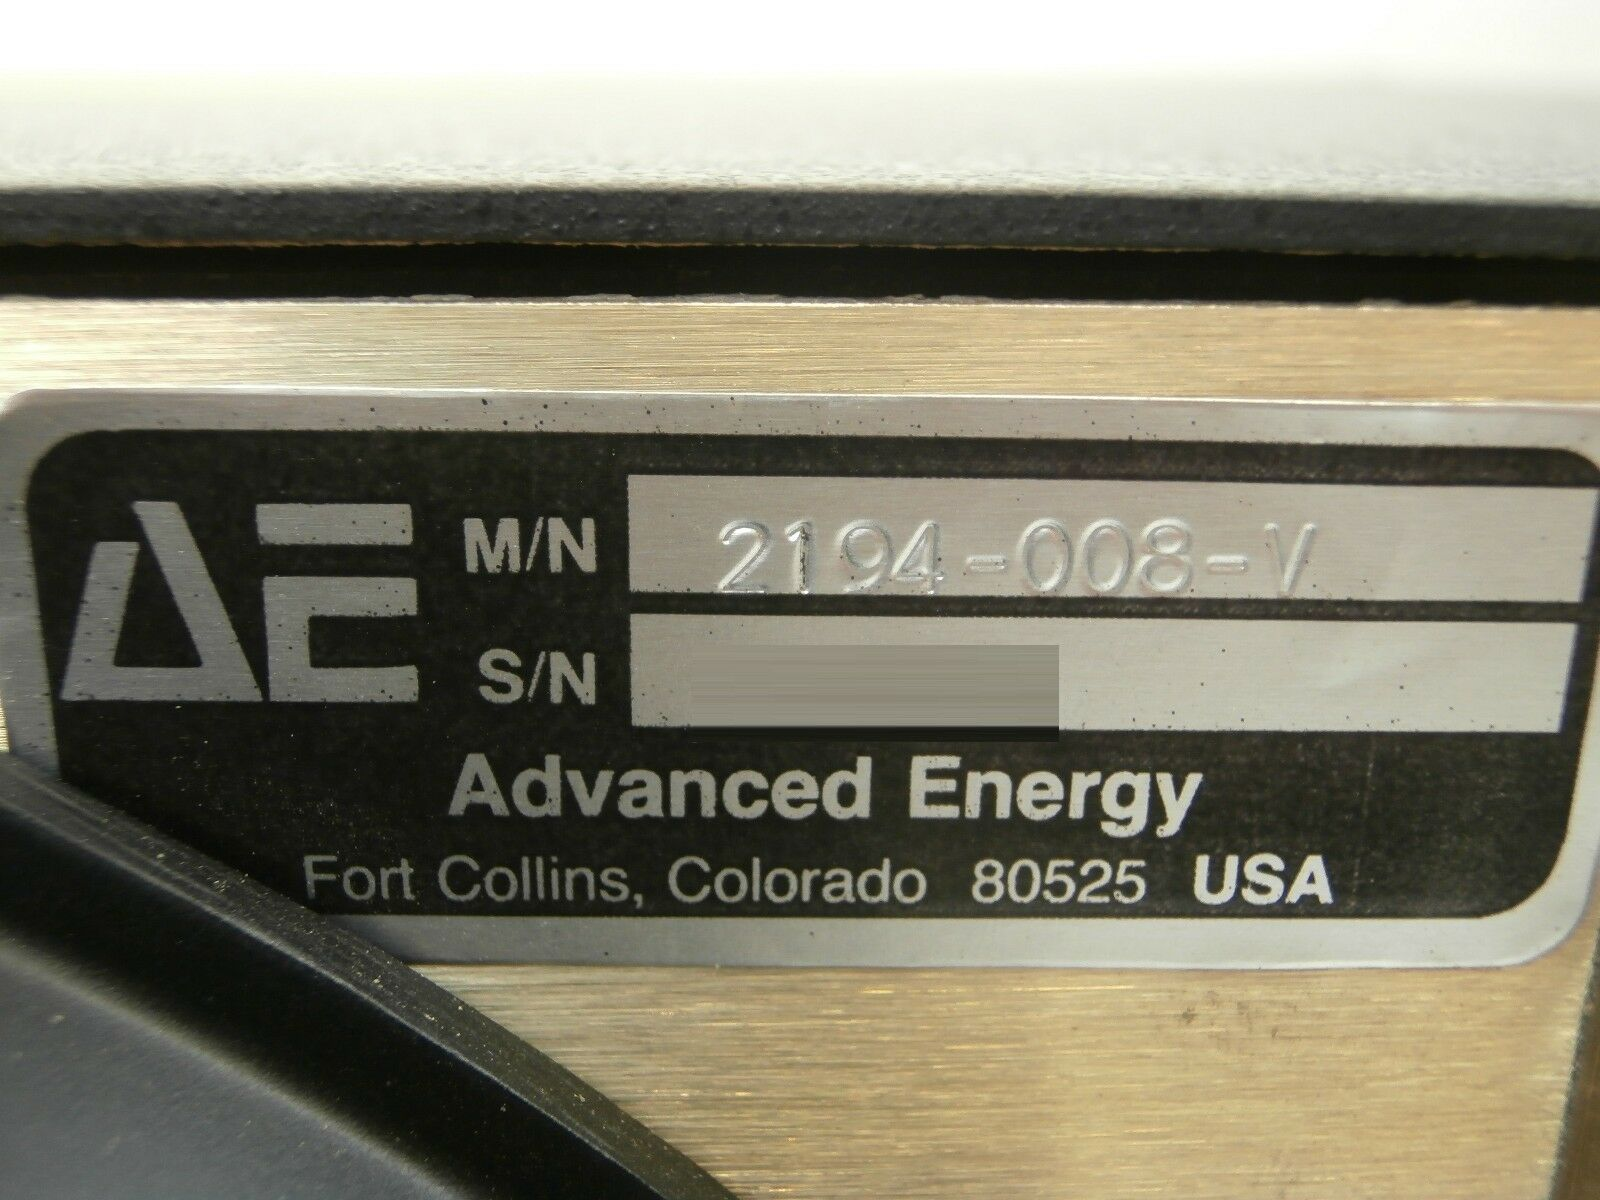 MDX-10K AE Advanced Energy 2194-008-V DC Supply SLAVE Used Tested Working